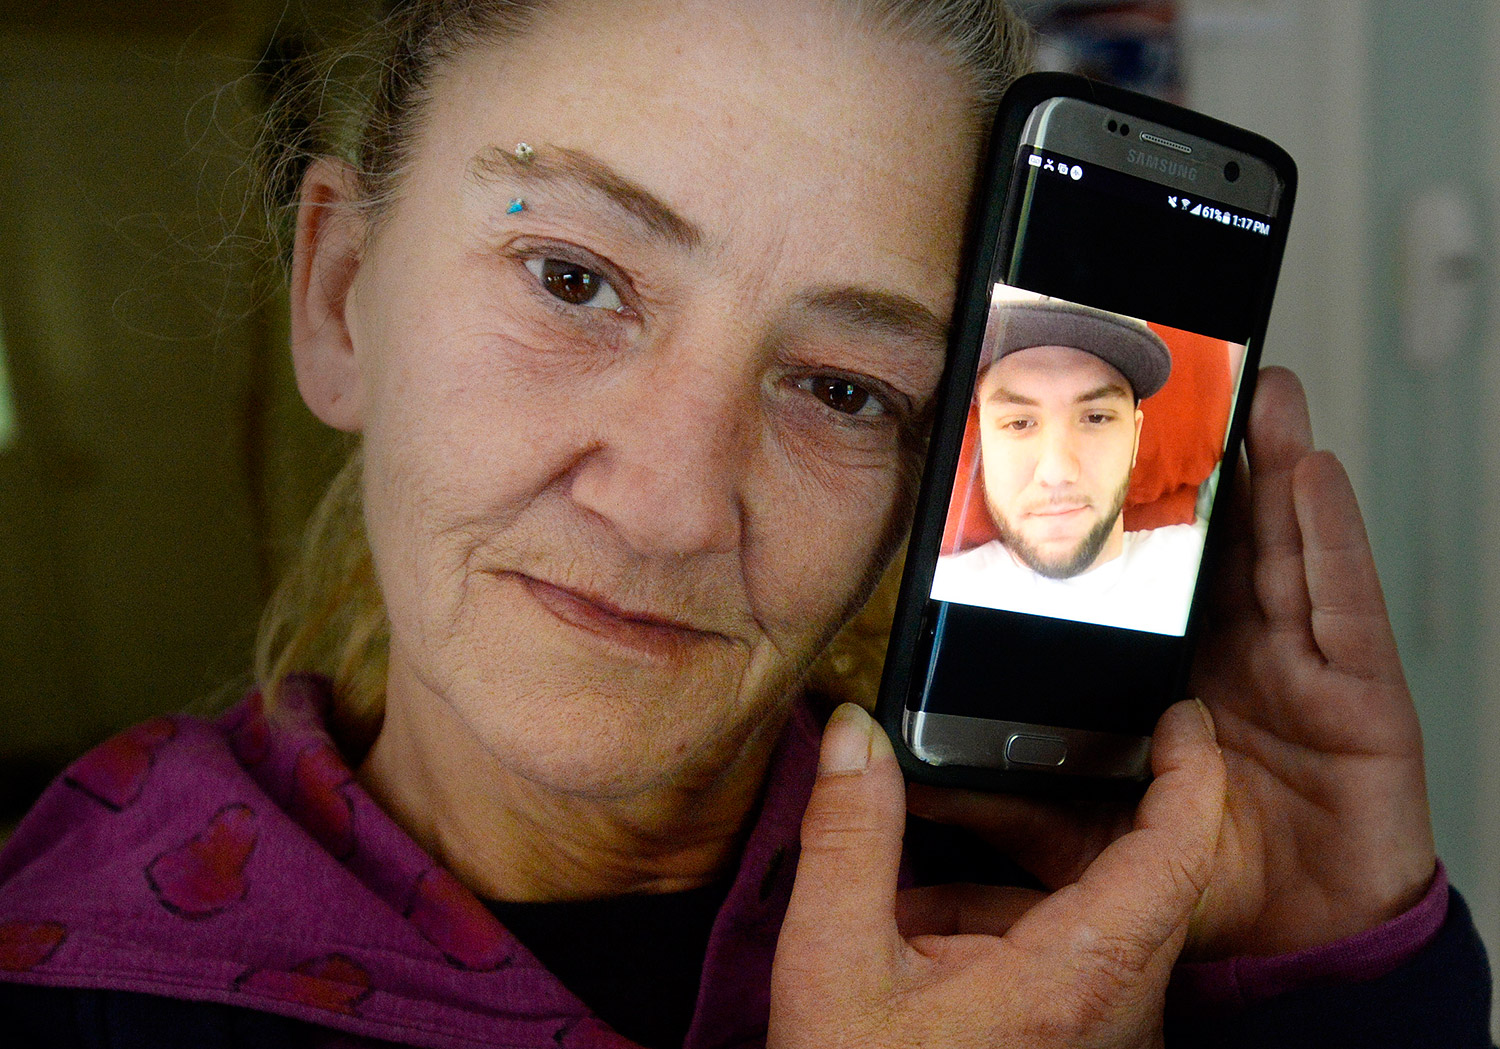 "Cheryl Methot, the mother of Jonathon Methot, who was shot early Monday morning in Biddeford, holds a phone with a photo of her son Friday. She said her son had struggled with prescription opiate addiction, but was working to get his life back on track, and ""was doing really good."" Shawn Patrick Ouellette/Staff Photographer"